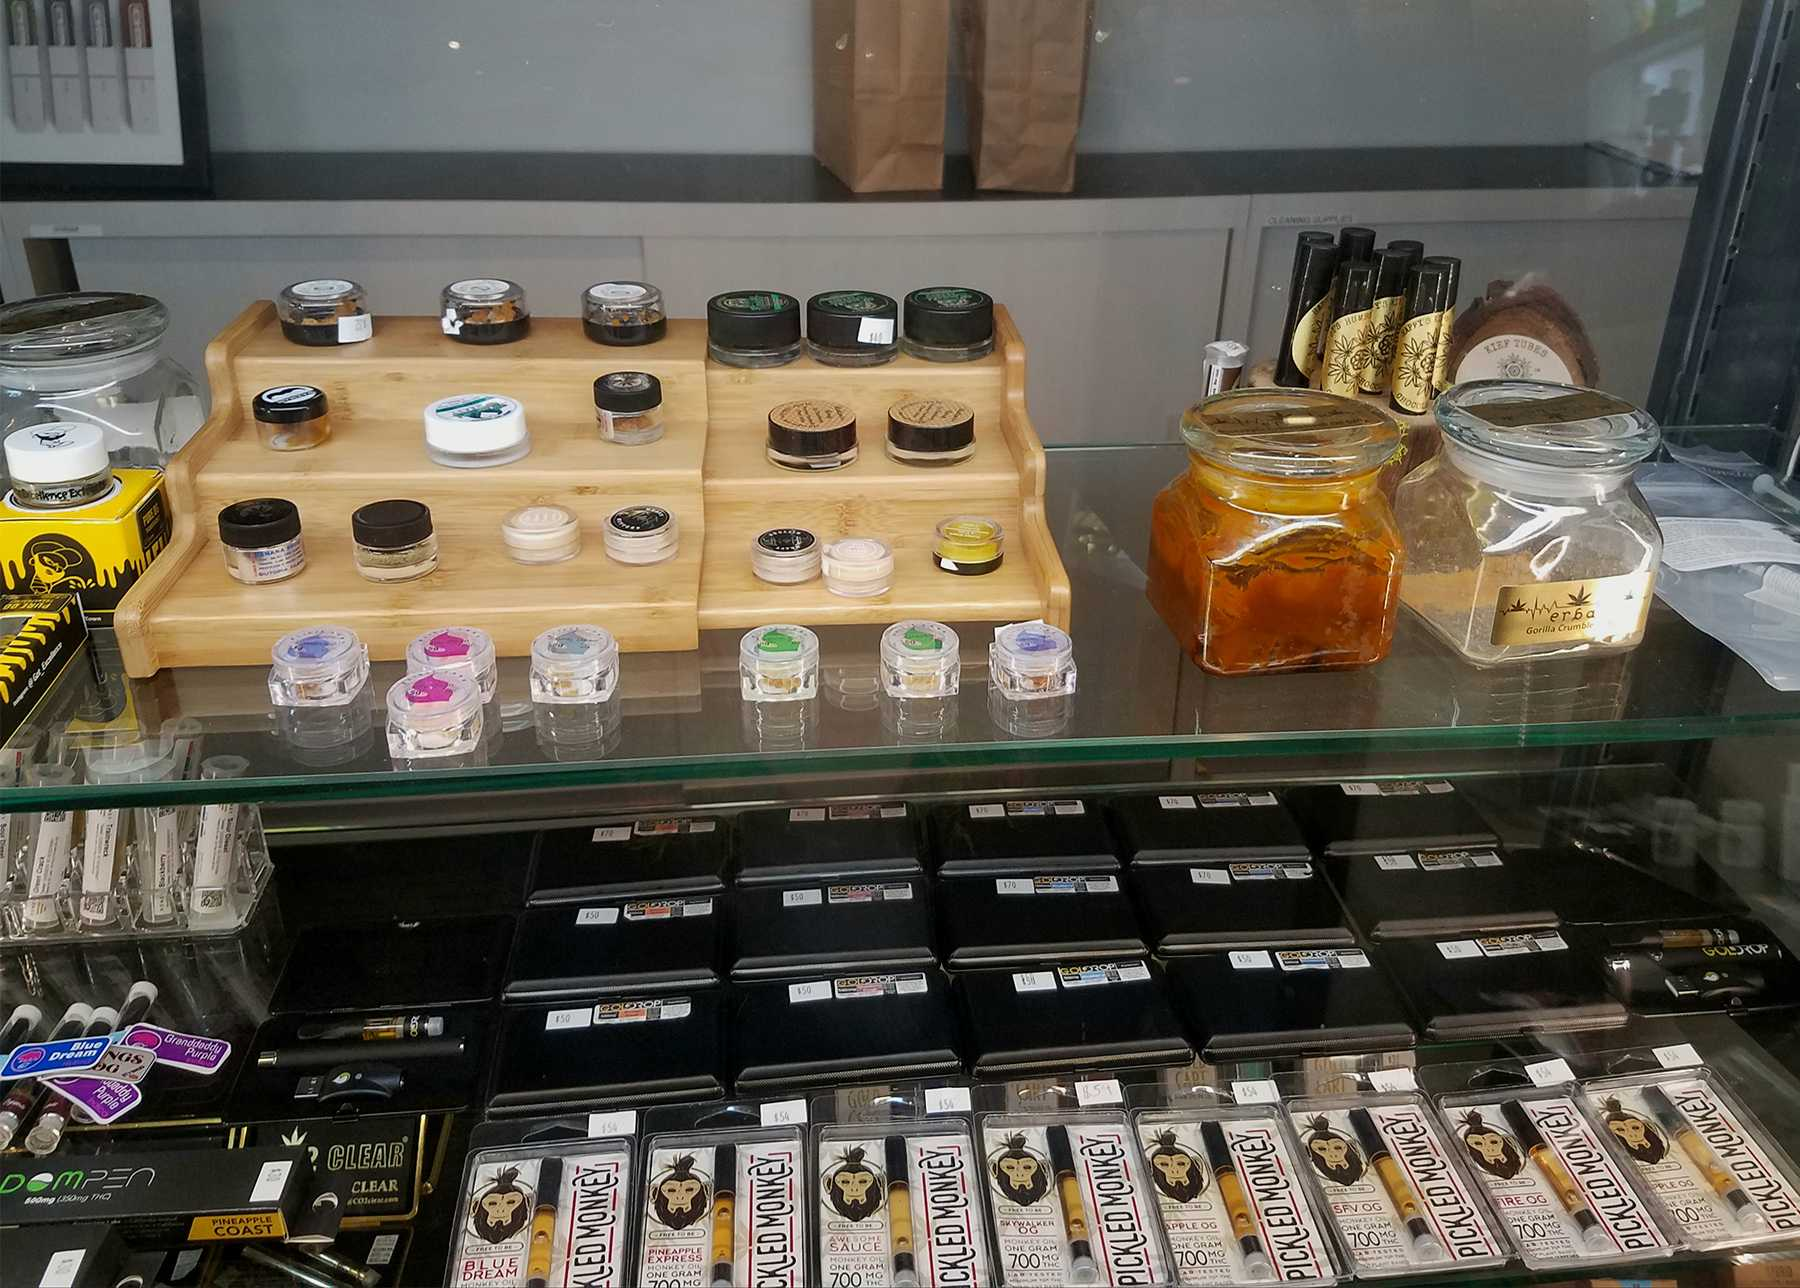 A display of cannabis products at Erba Collective in Santa Monica, Calif. Photo credit: Tera Trujillo